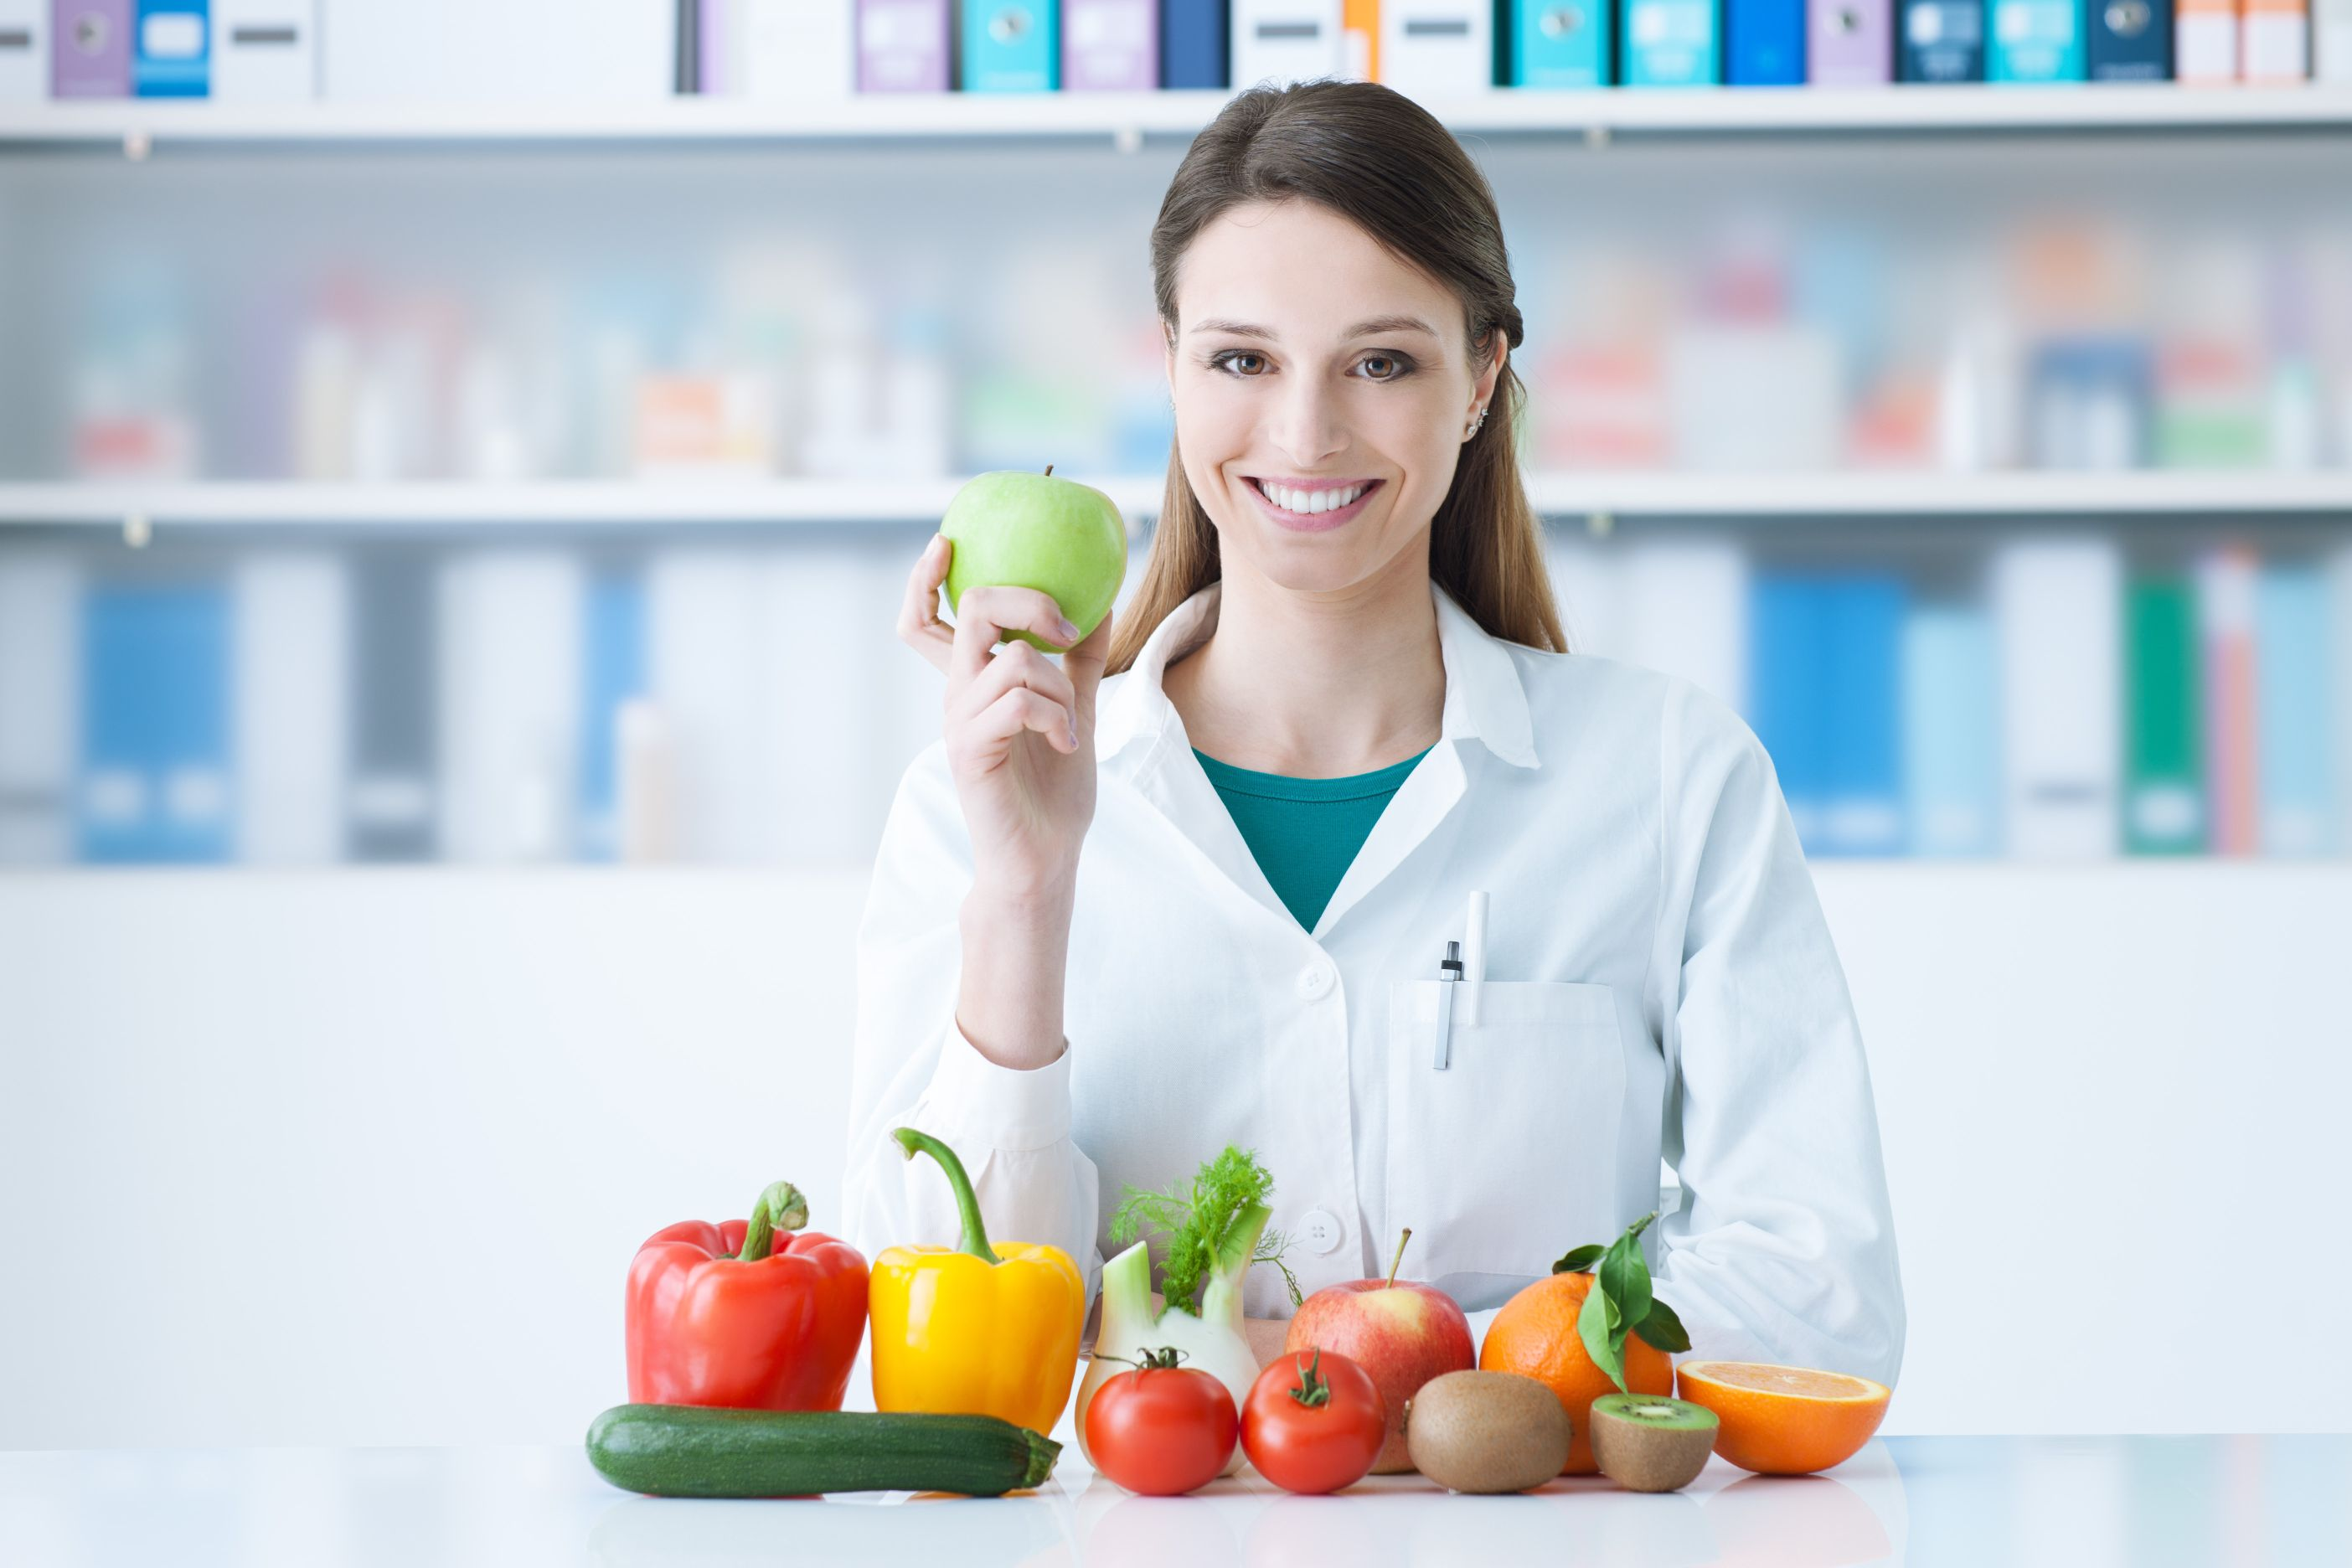 Nutritionists